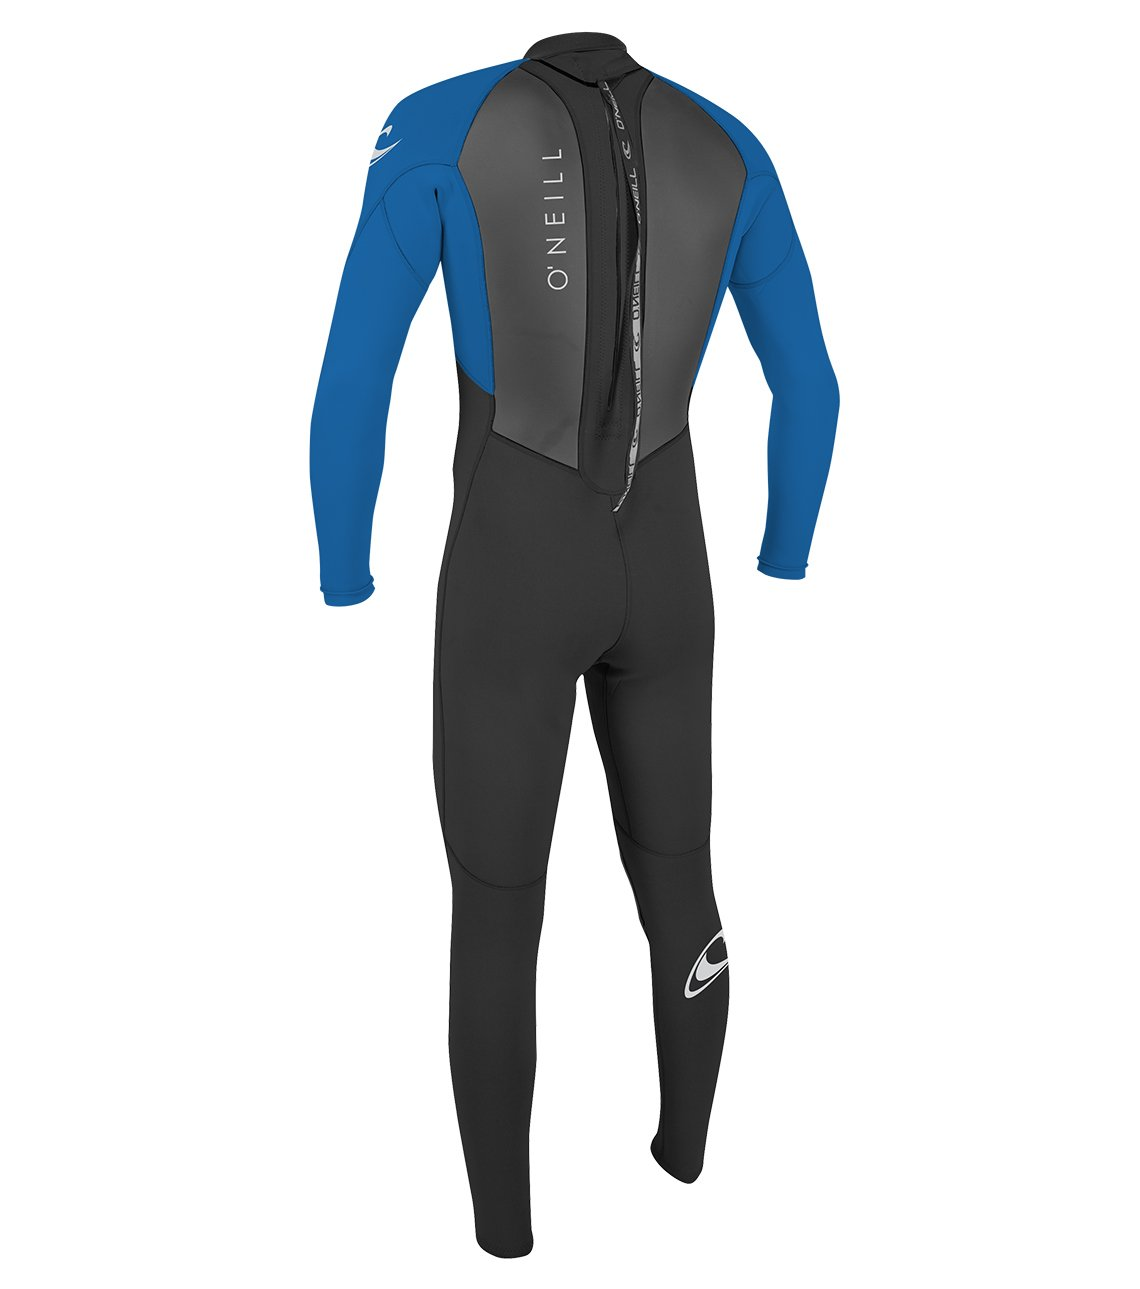 O'Neill Youth Reactor-2 3/2mm Back Zip Full Wetsuit, Black/Ocean, 4 by O'Neill Wetsuits (Image #3)